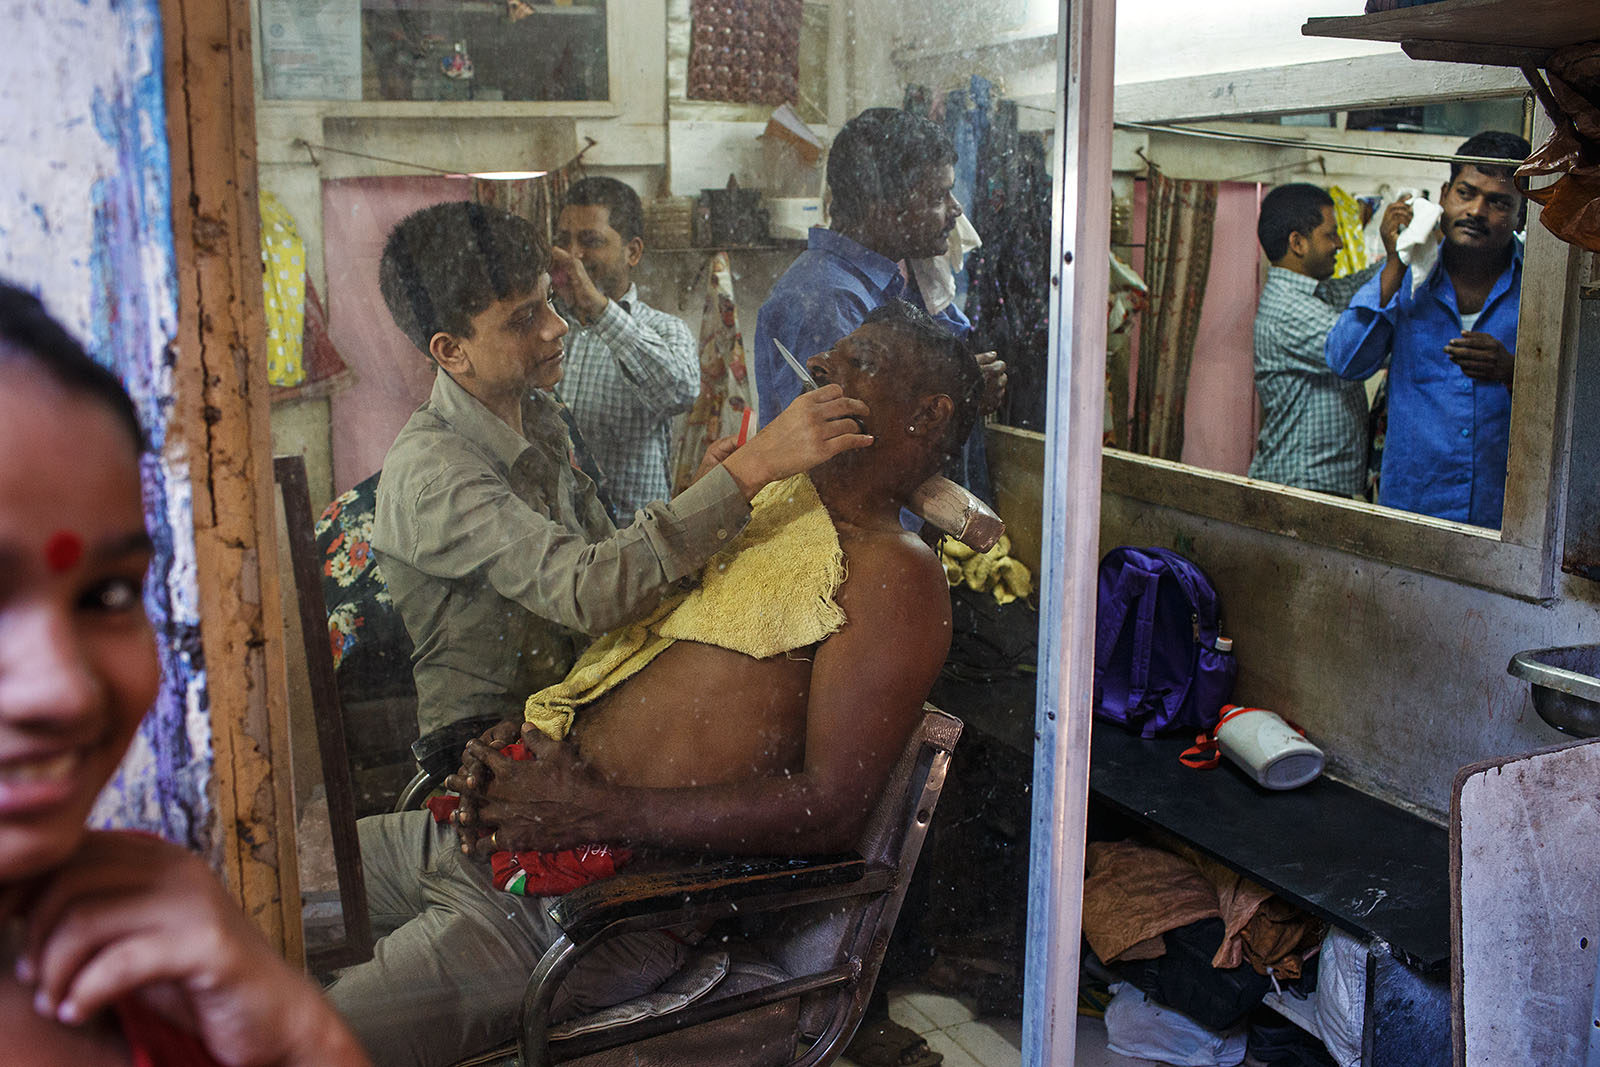 At the barber's - Mumbai, India | by Maciej Dakowicz